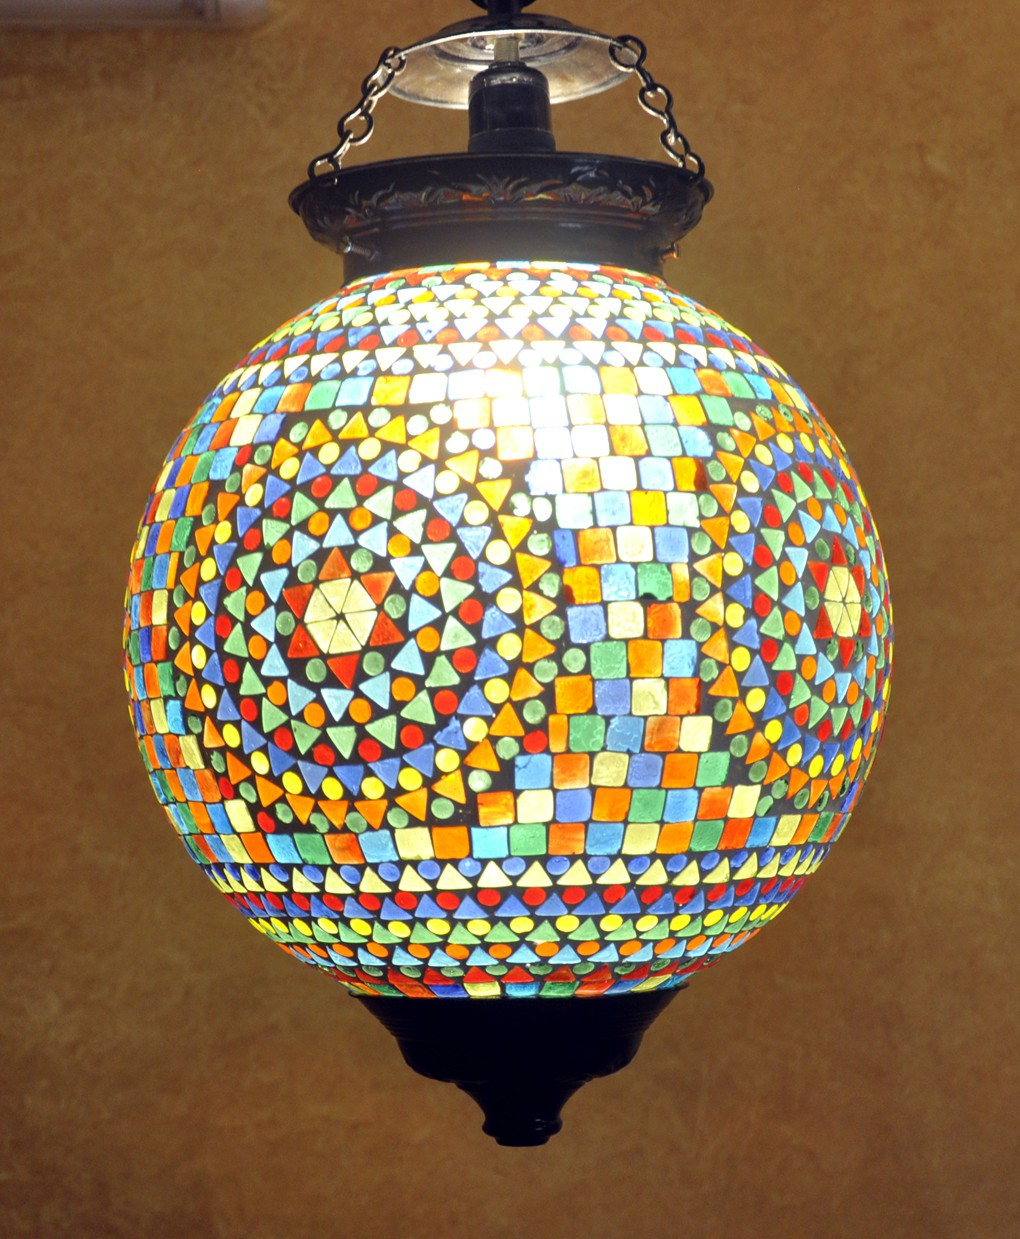 Lal Haveli Vintage Antique Mosaic Hanging Lamps Ceiling Pendant Lamps Night Light Blue Glass Lantern